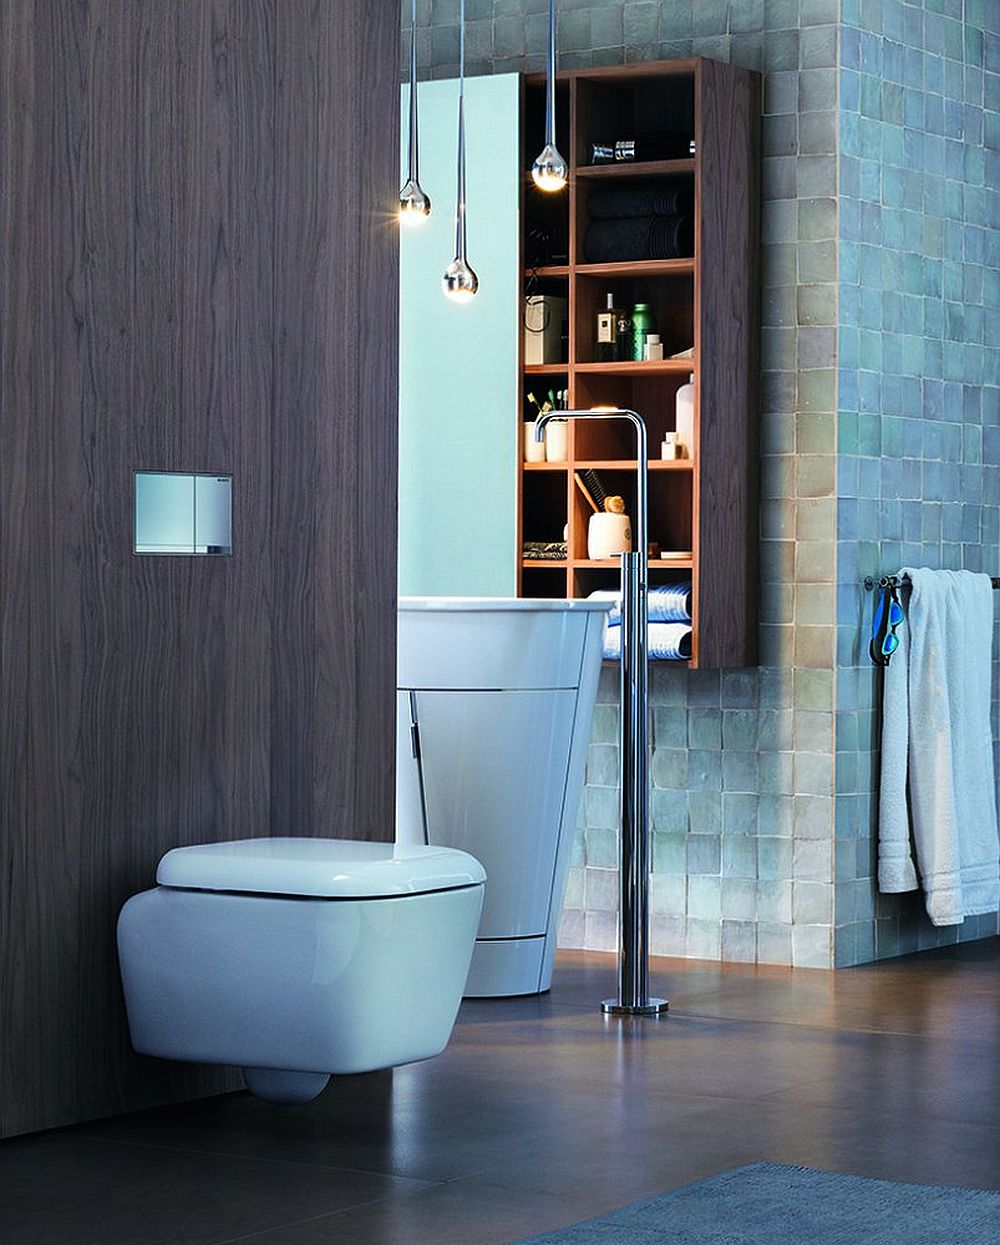 adelaparvu.com about odor filtration system in bathrooms without the Geberit DuoFresh window (3)